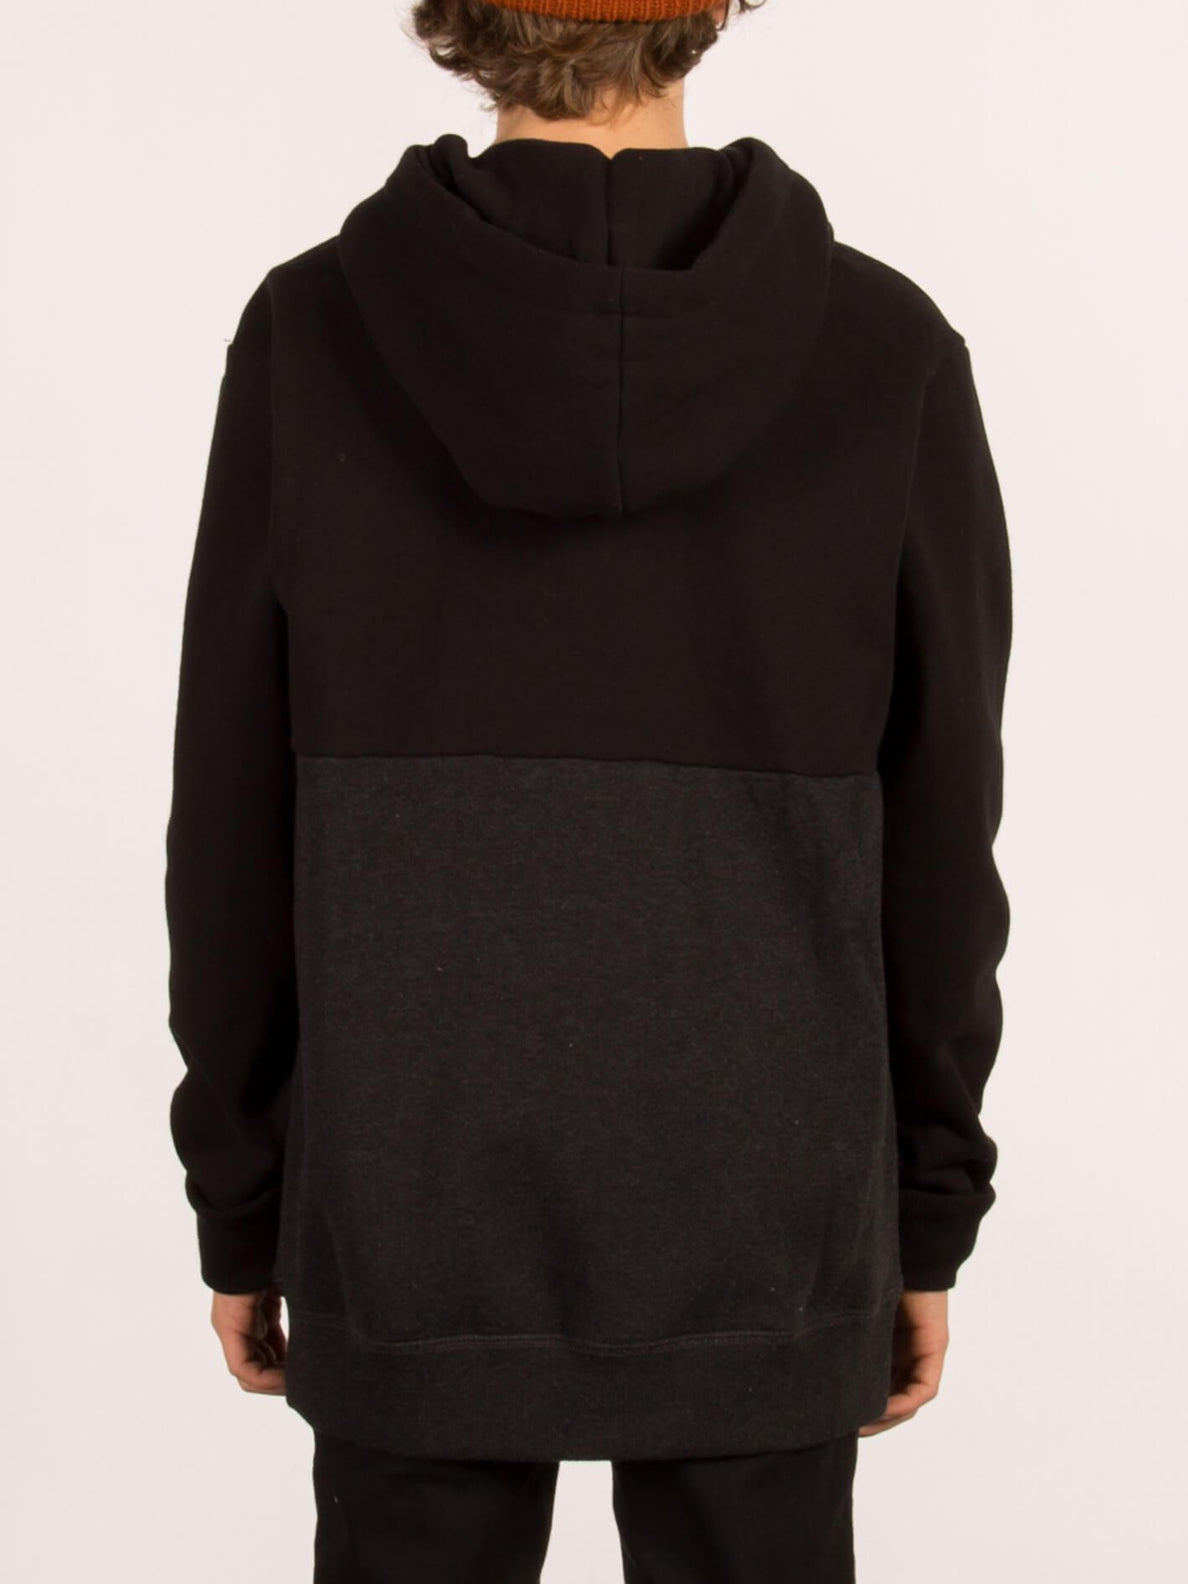 Single Stone Division Hooded Pullover - Black (Niňo)